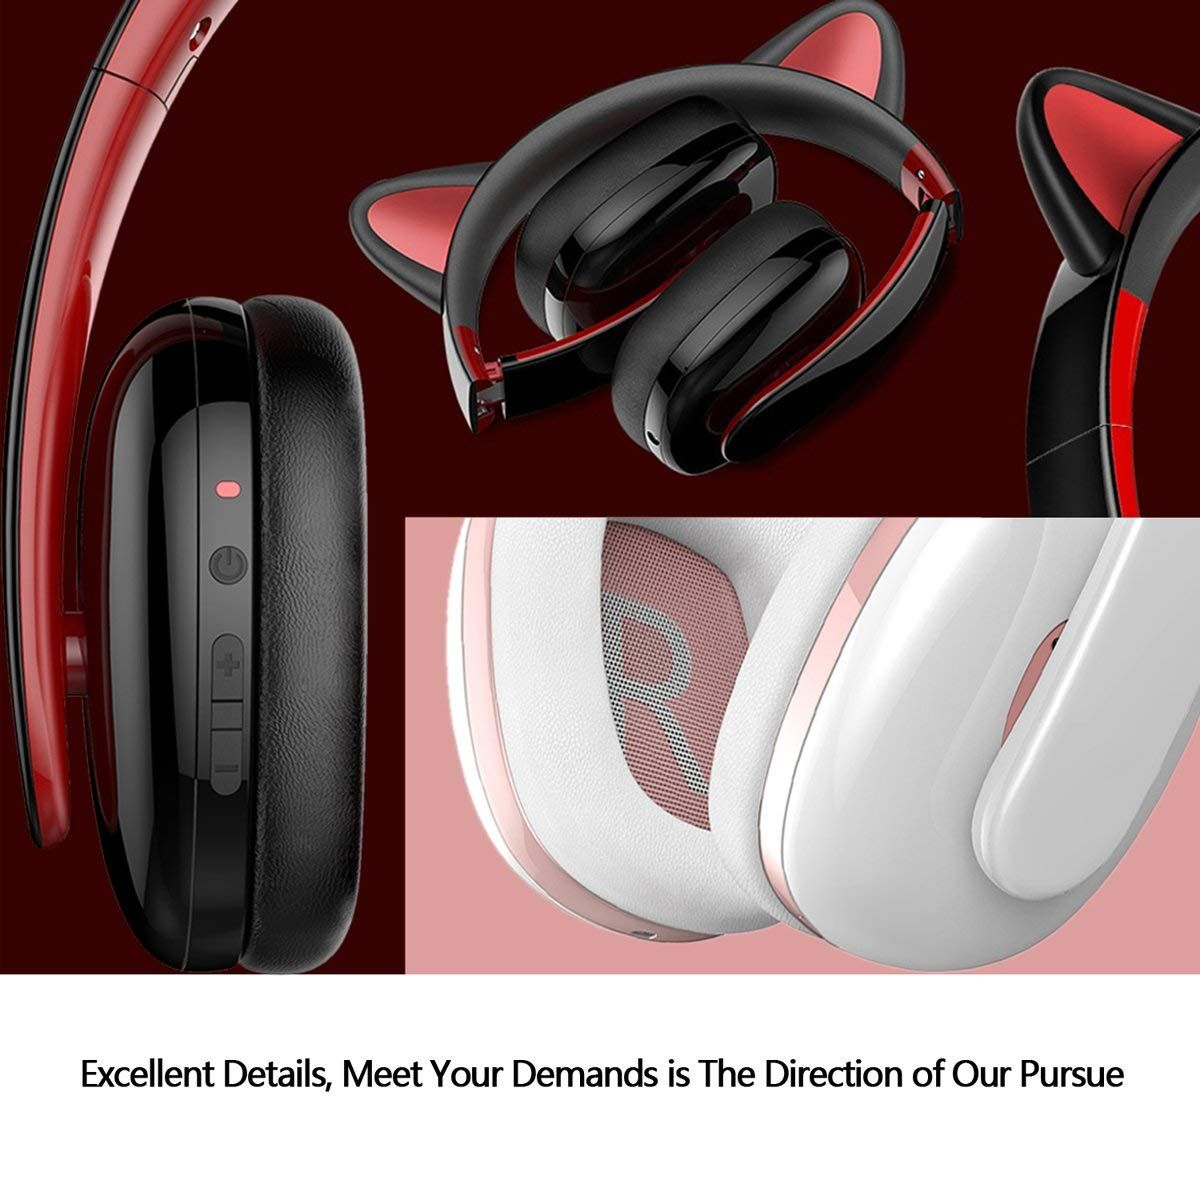 1f061484369 ... Headphone Creative Cat Ear Stereo Over-ear Game Gaming Bass Headset  Noise Canceling Headband Earphone with MIC Rechargeable Port for Bluetooth  4.0 ...